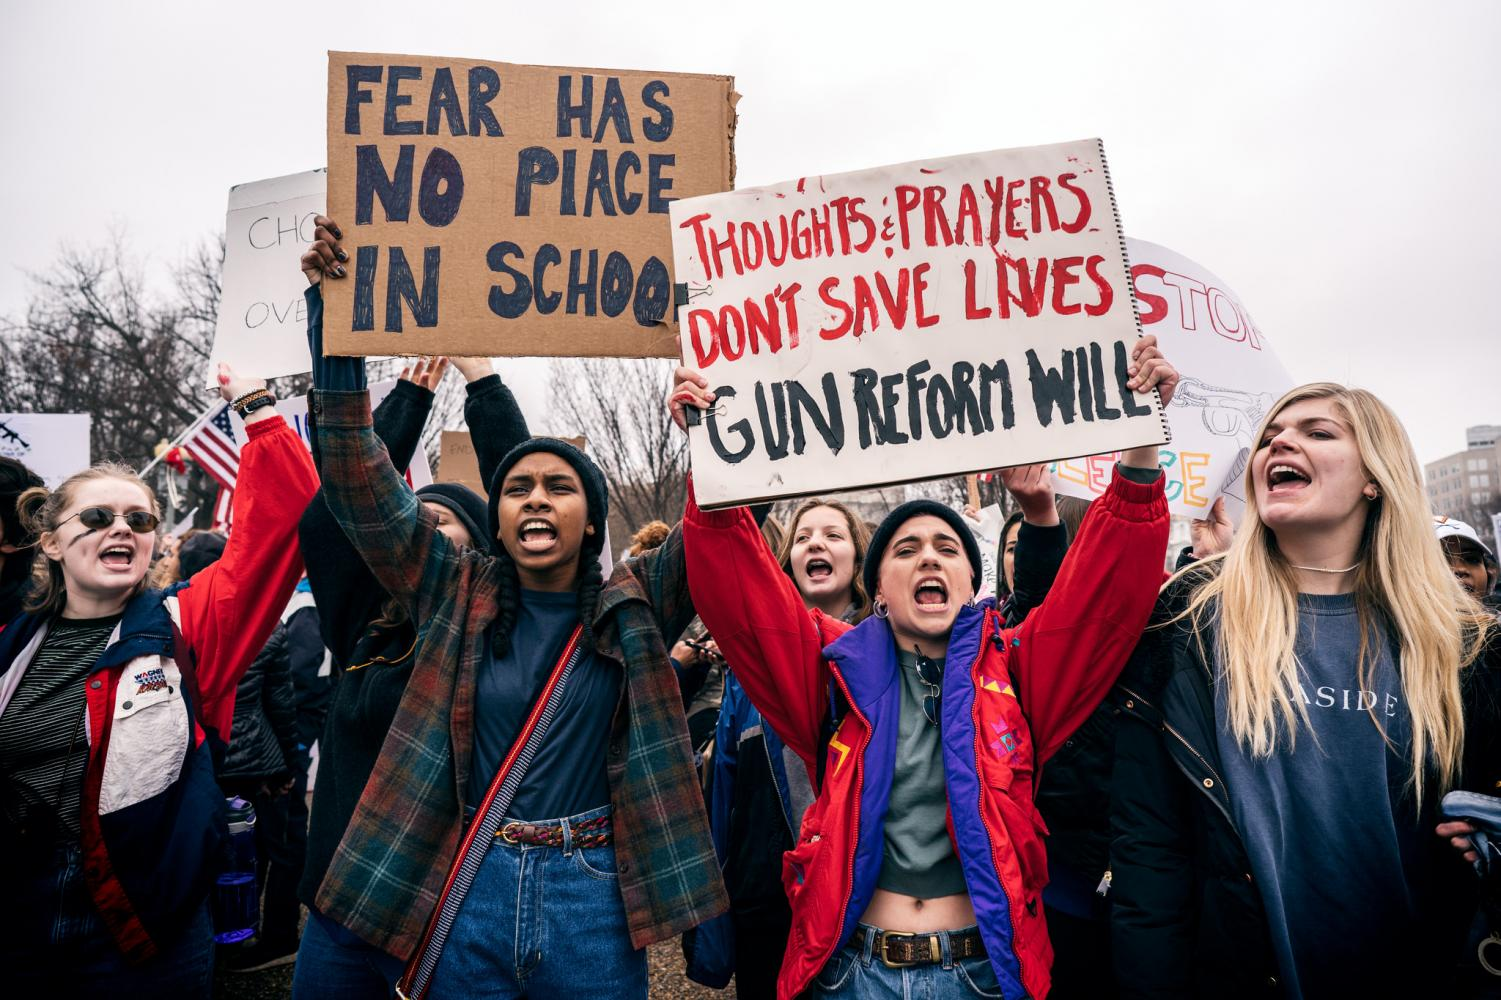 Organized teens for gun reforms.